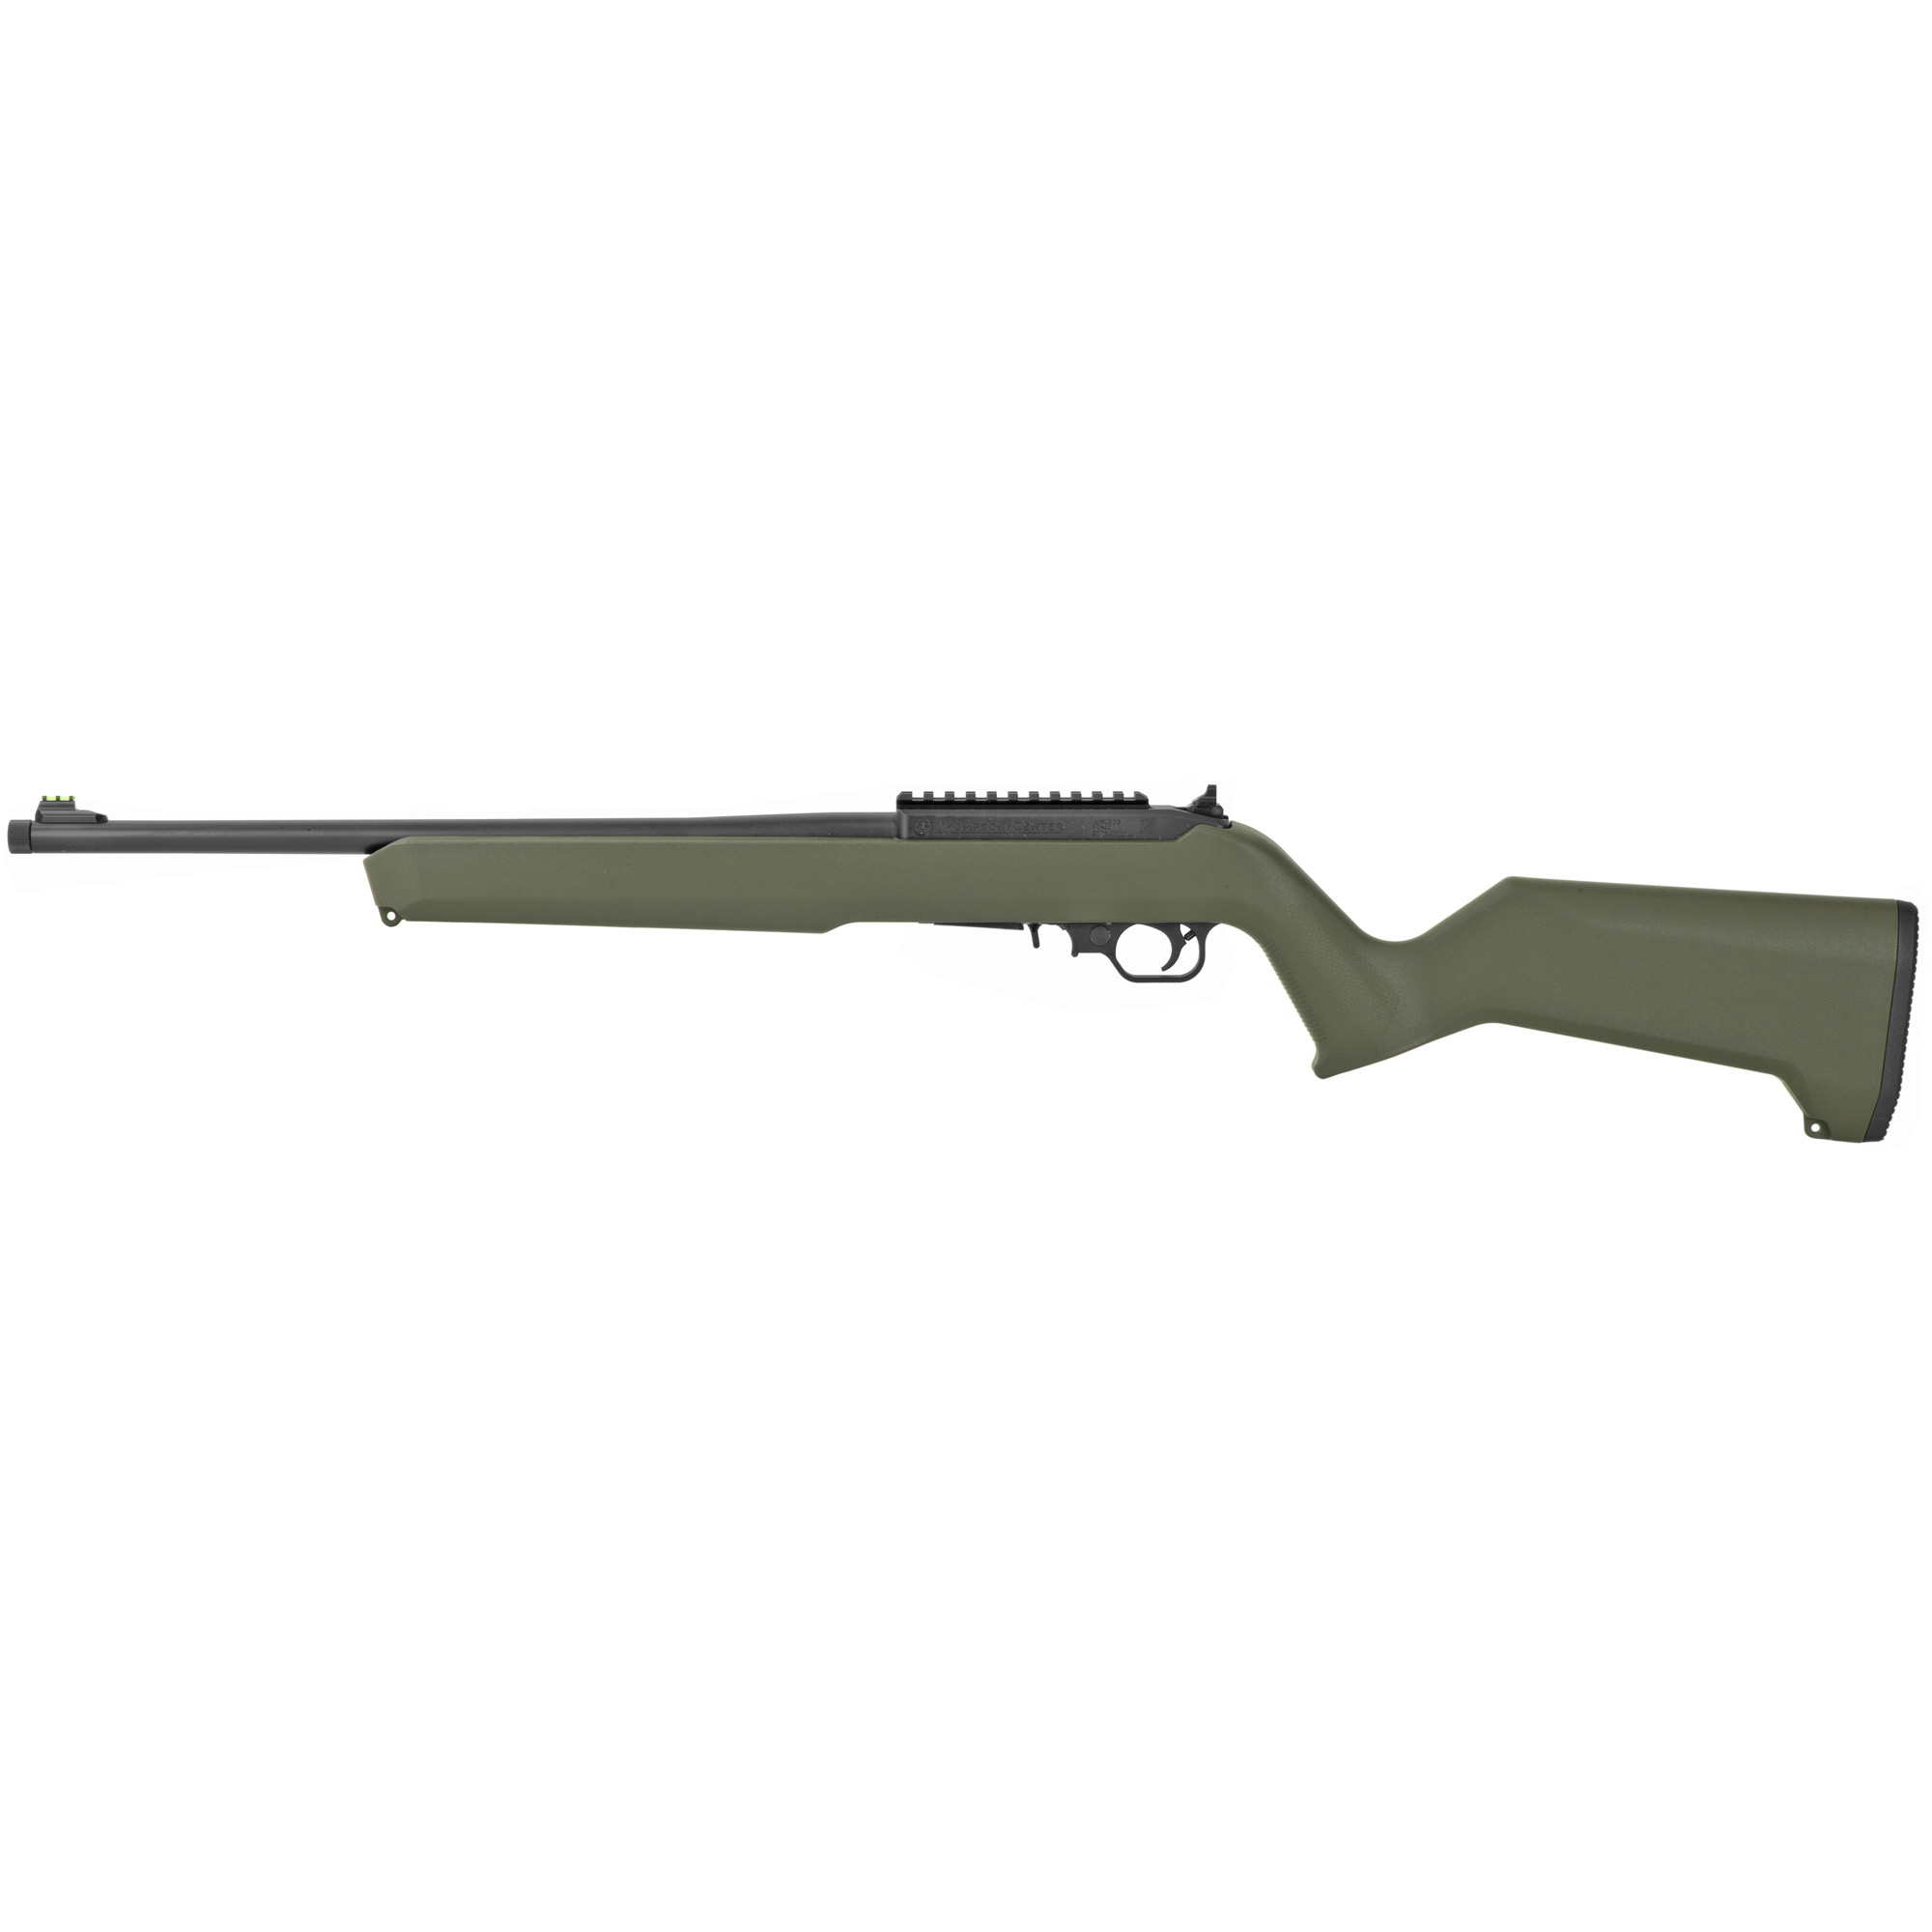 """The Thompson/Center T/CR22 rifle delivers exceptional out-of-the-box performance through a feature set that appeals to both recreational shooters and hunters. The T/CR22 includes a green fiber optic front sight and adjustable rear peep sight for quick target acquisition"""" while the built-in picatinny-style rail allows for the mounting of an optic for precision shooting at longer ranges."""